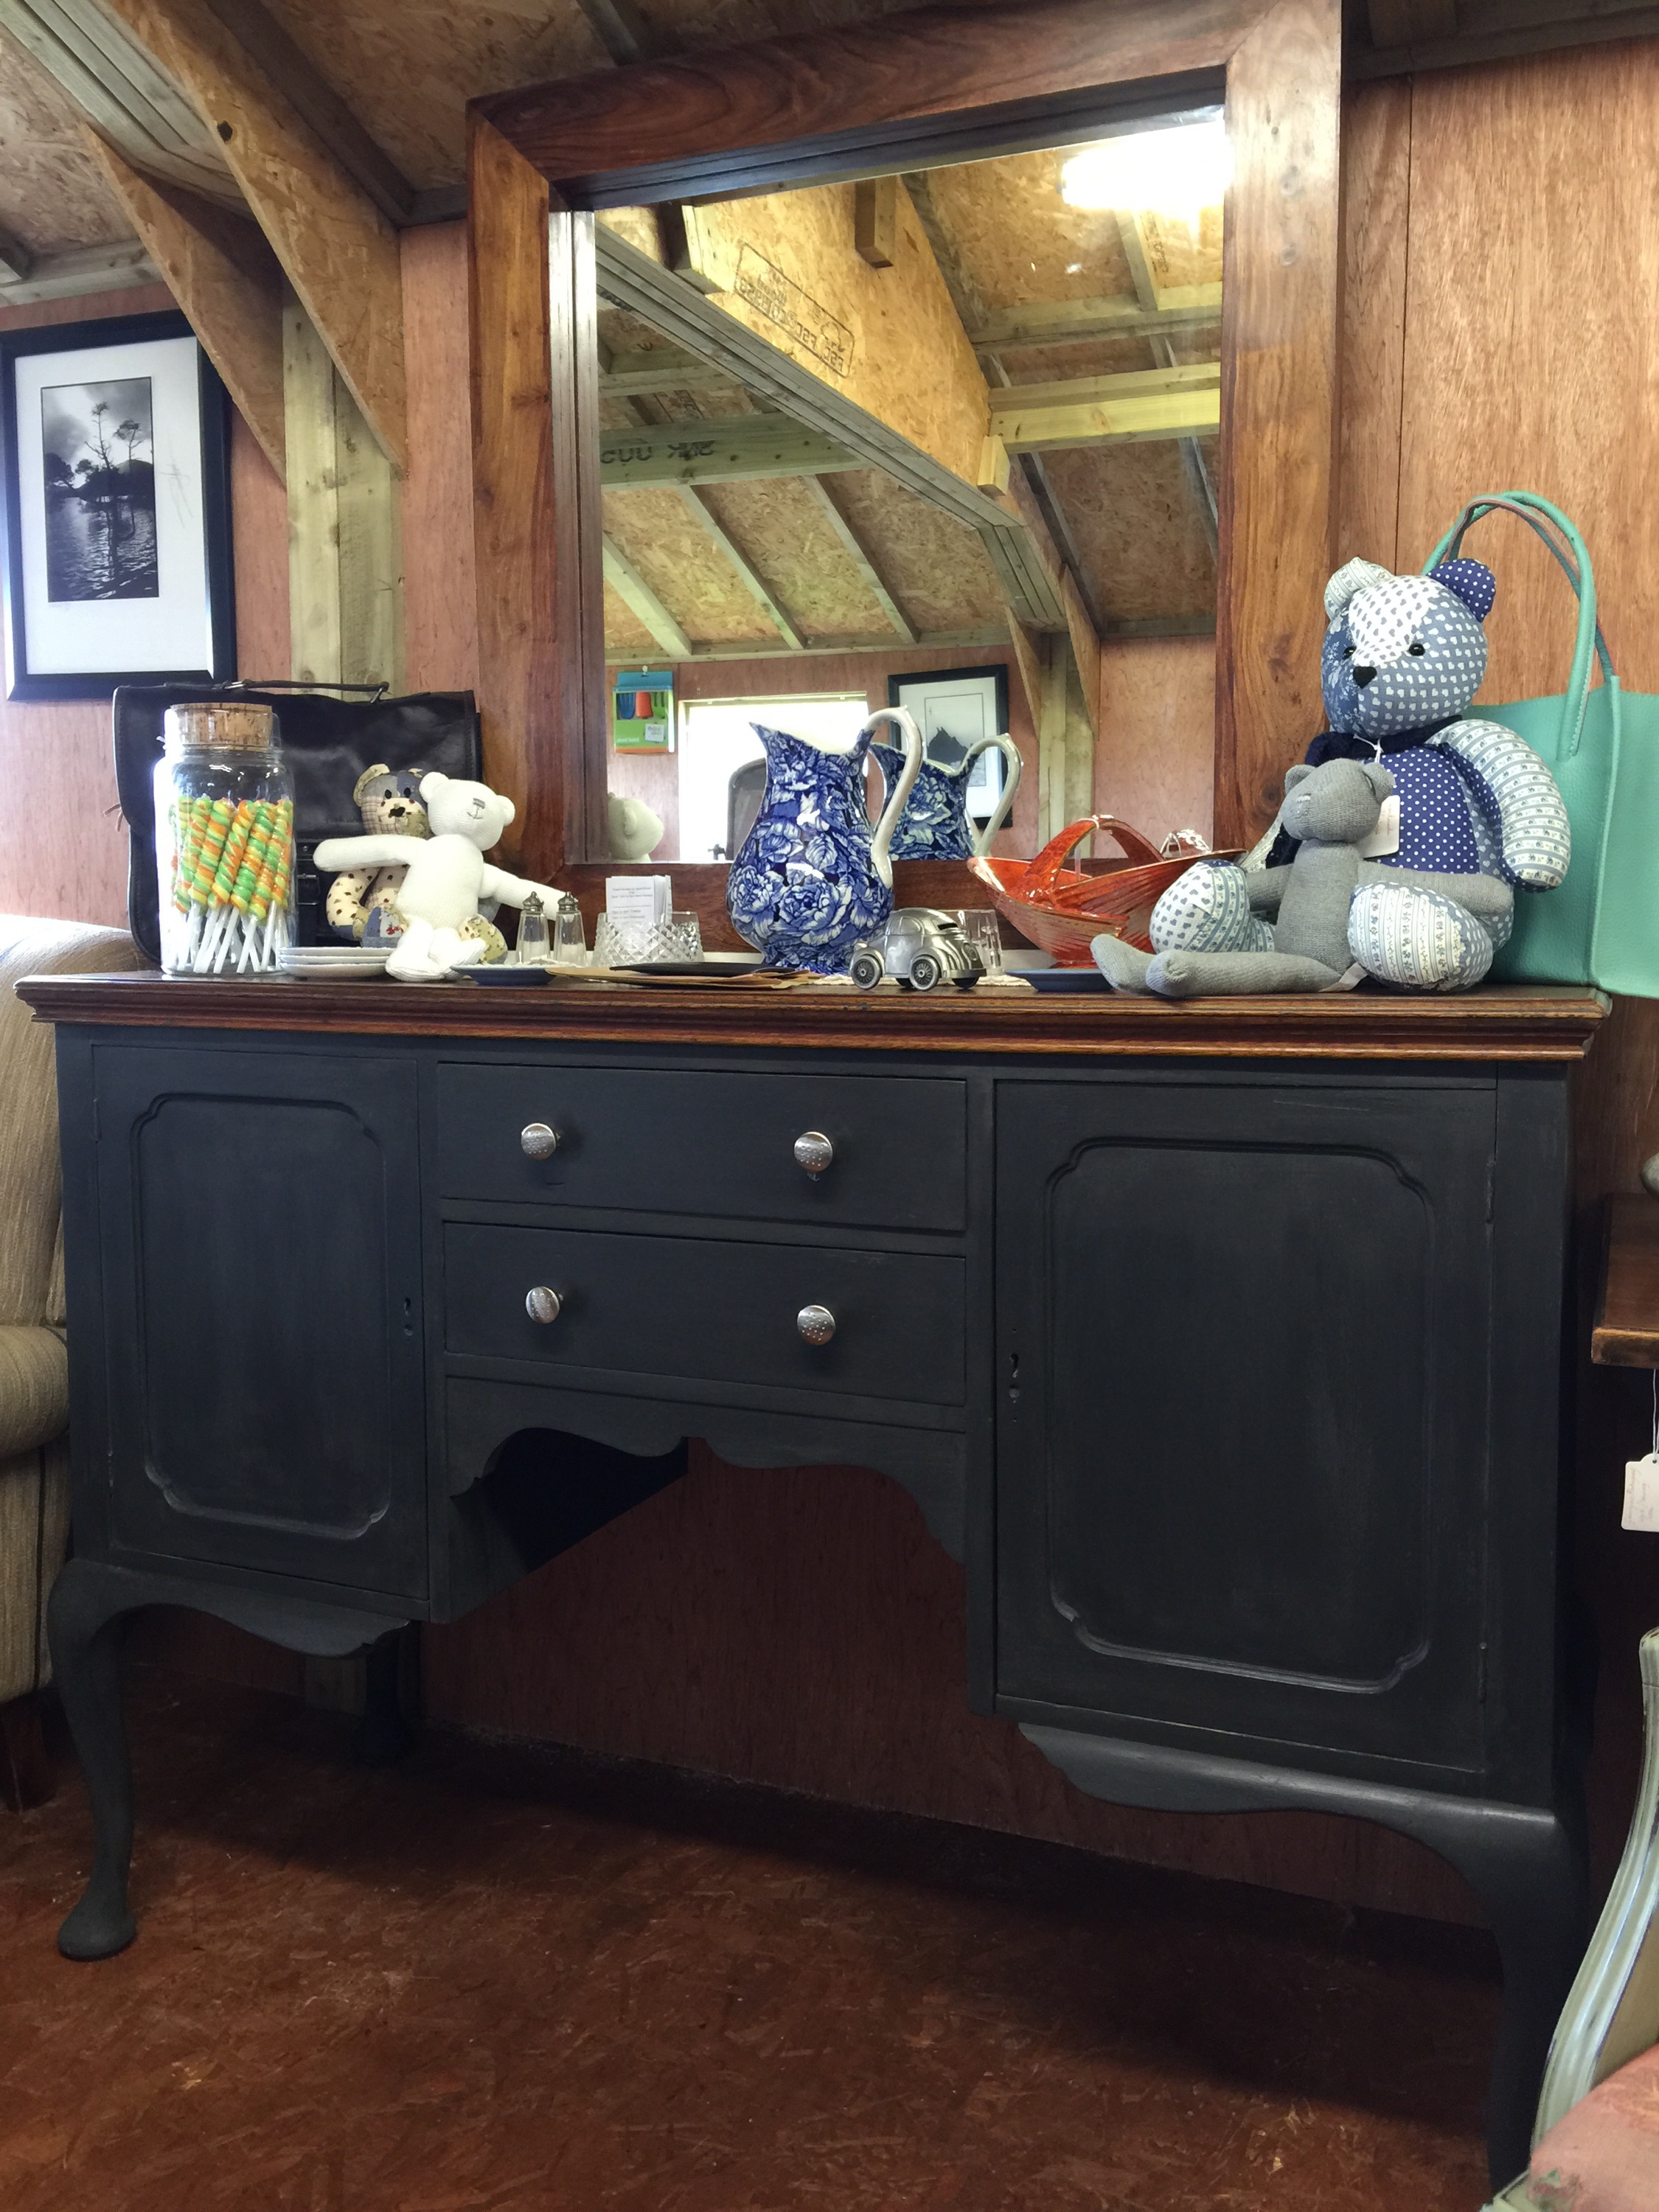 A French Oak Sideboard in Navy Black